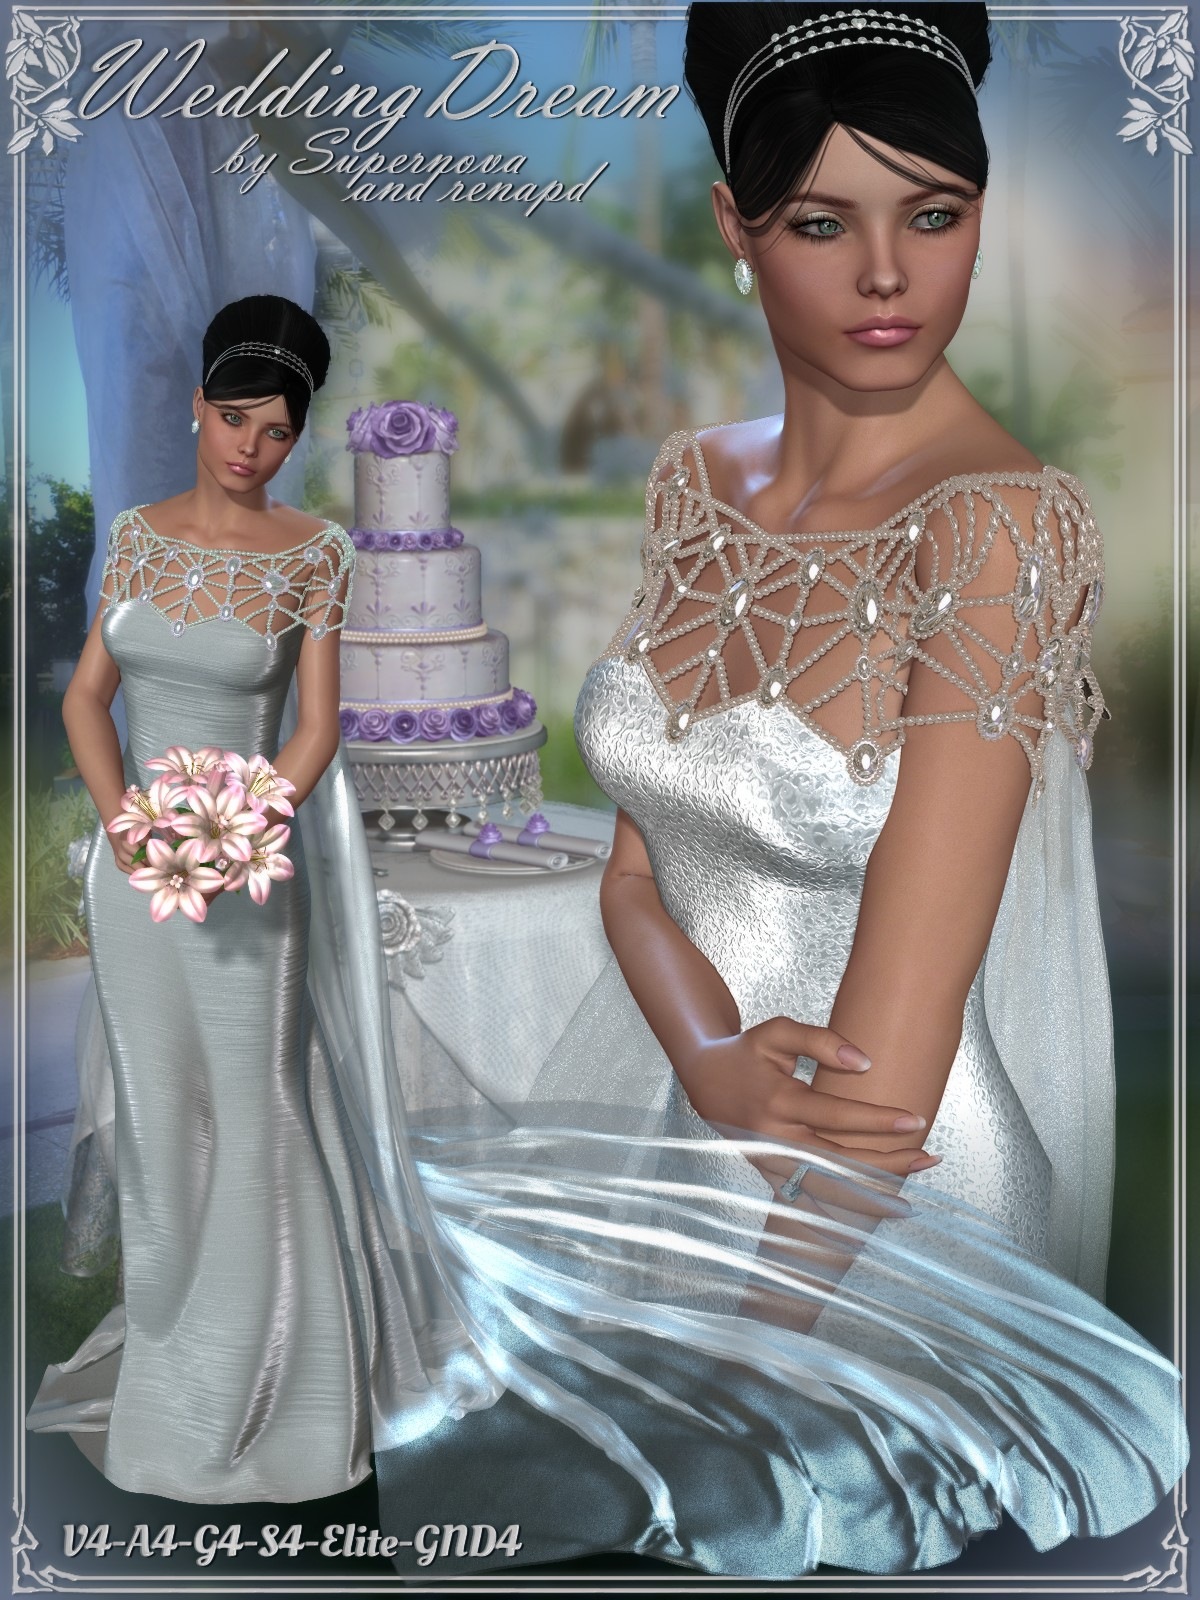 WEDDING-DREAM V4-A4-S4-G4-Elite-GND4